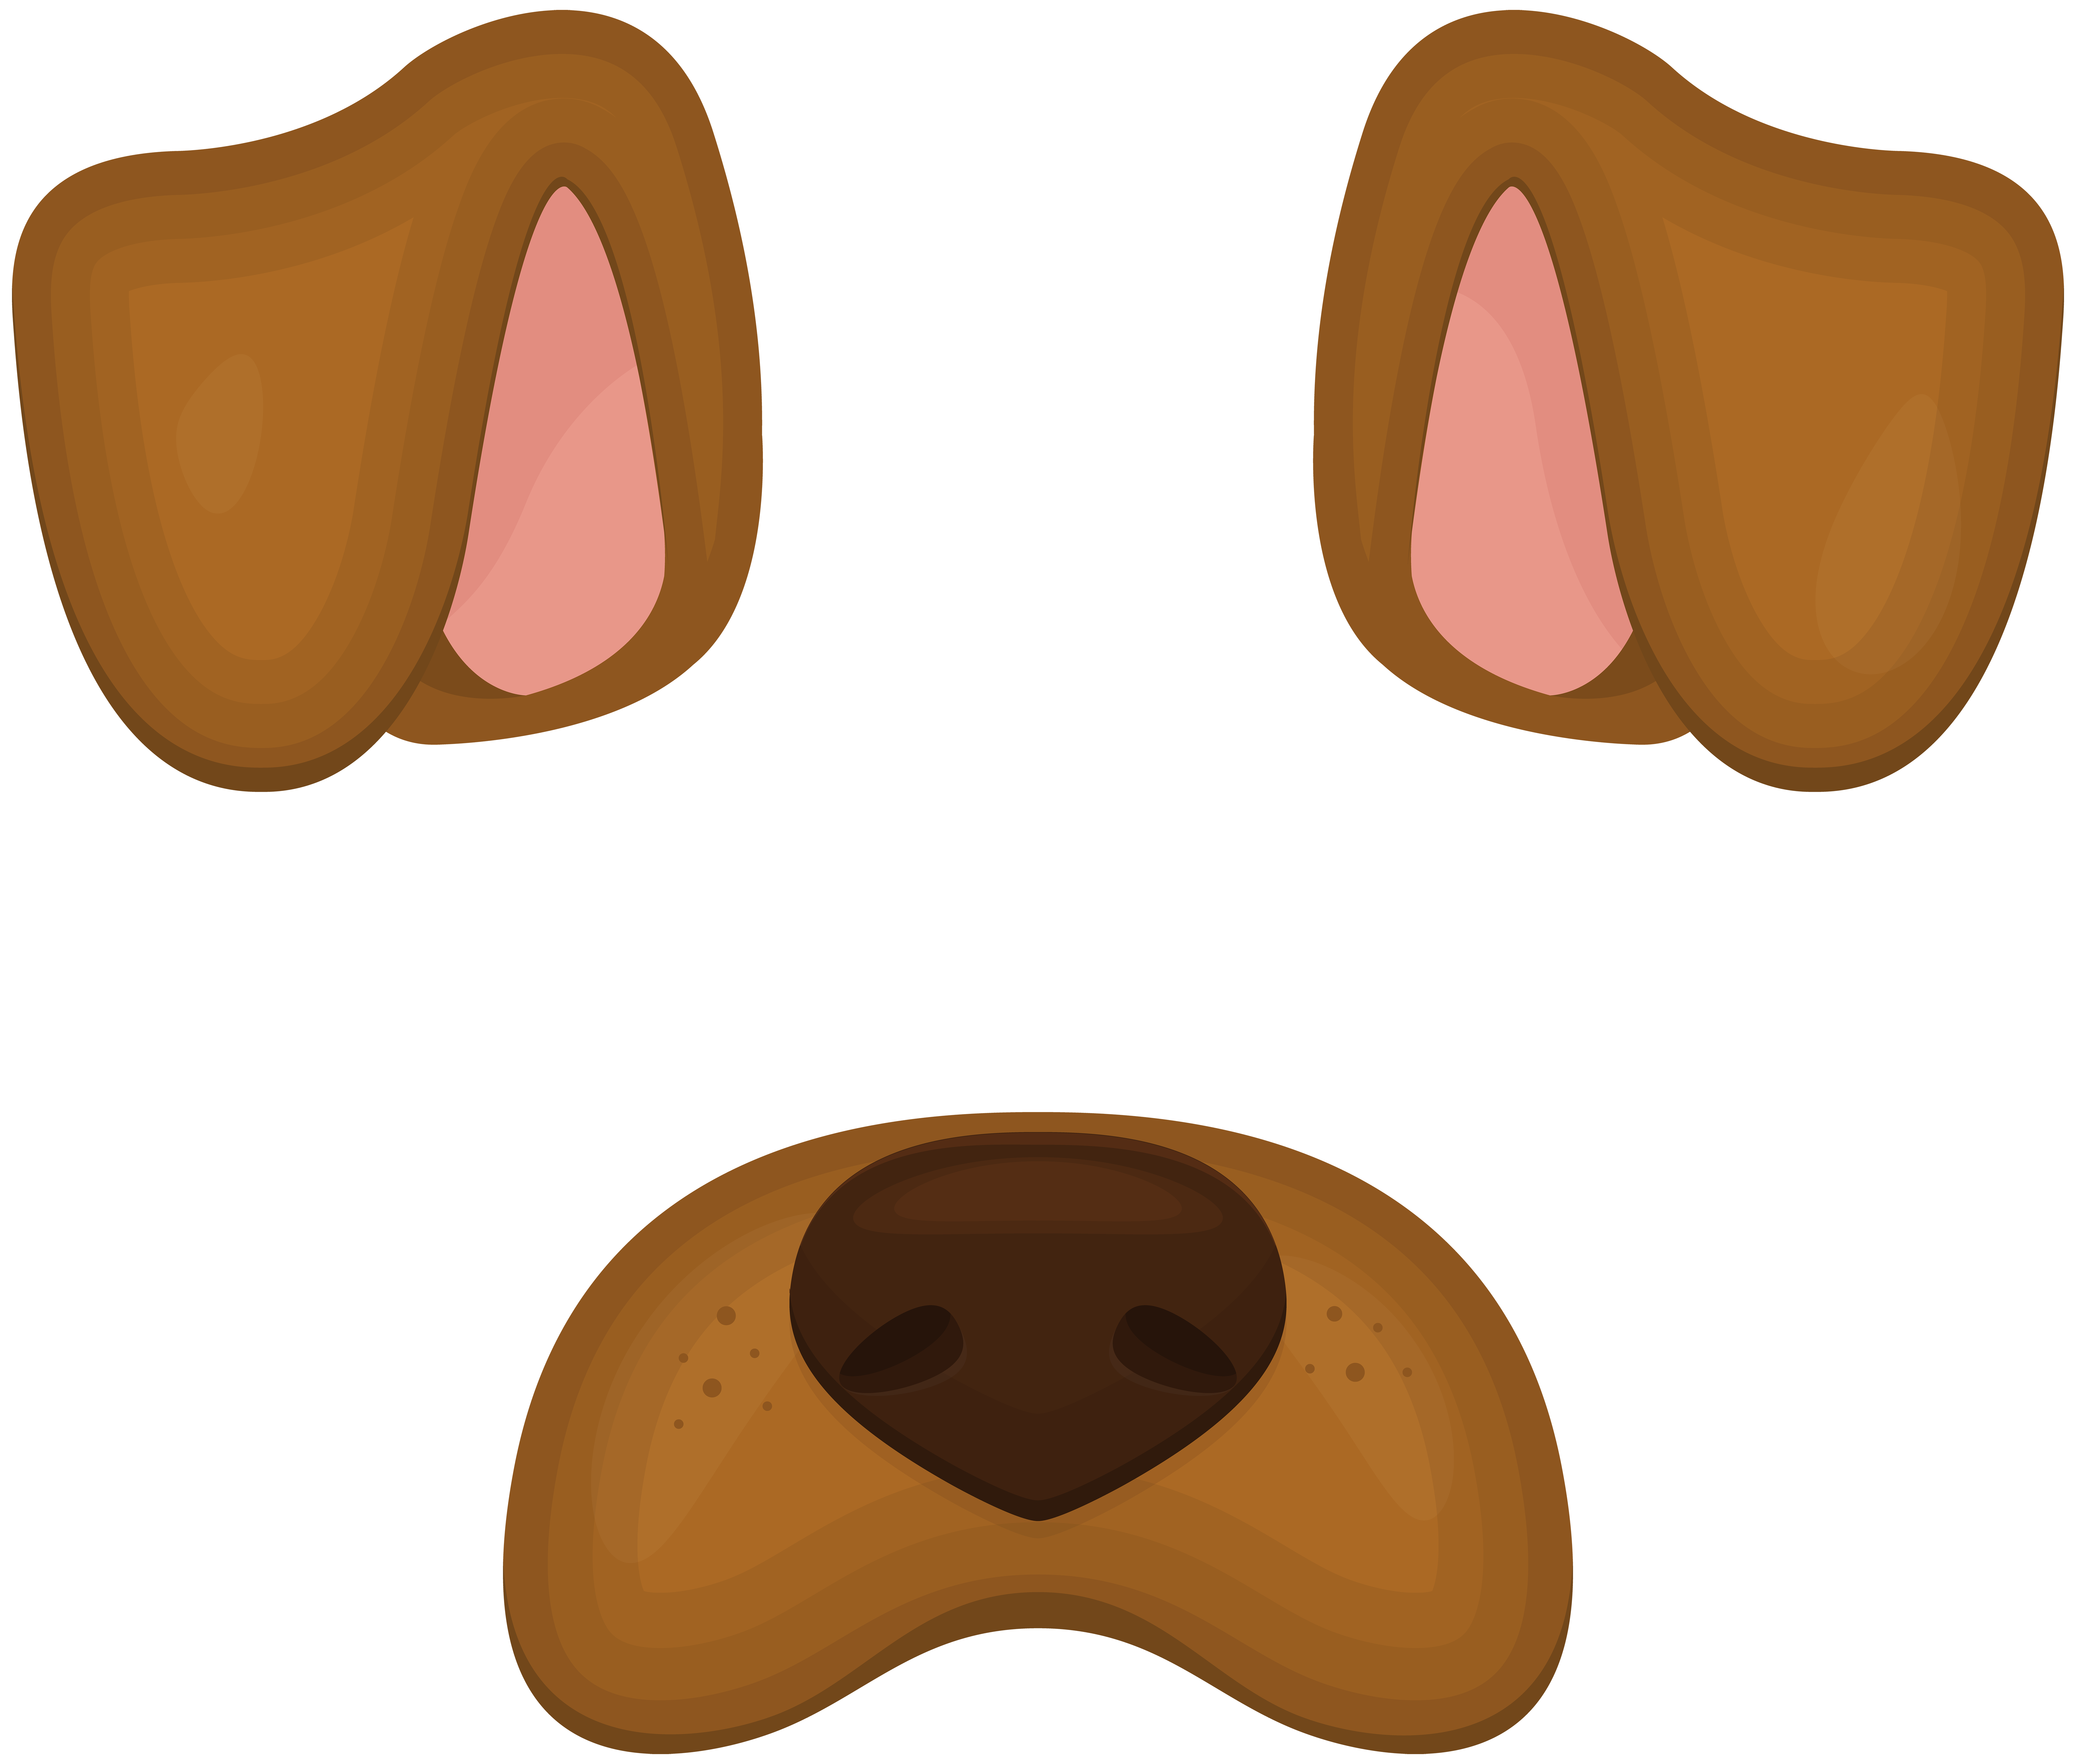 Dog ears clipart image royalty free Border Collie Dogo Argentino Puppy Clip art - Dog Face Mask PNG Clip ... image royalty free